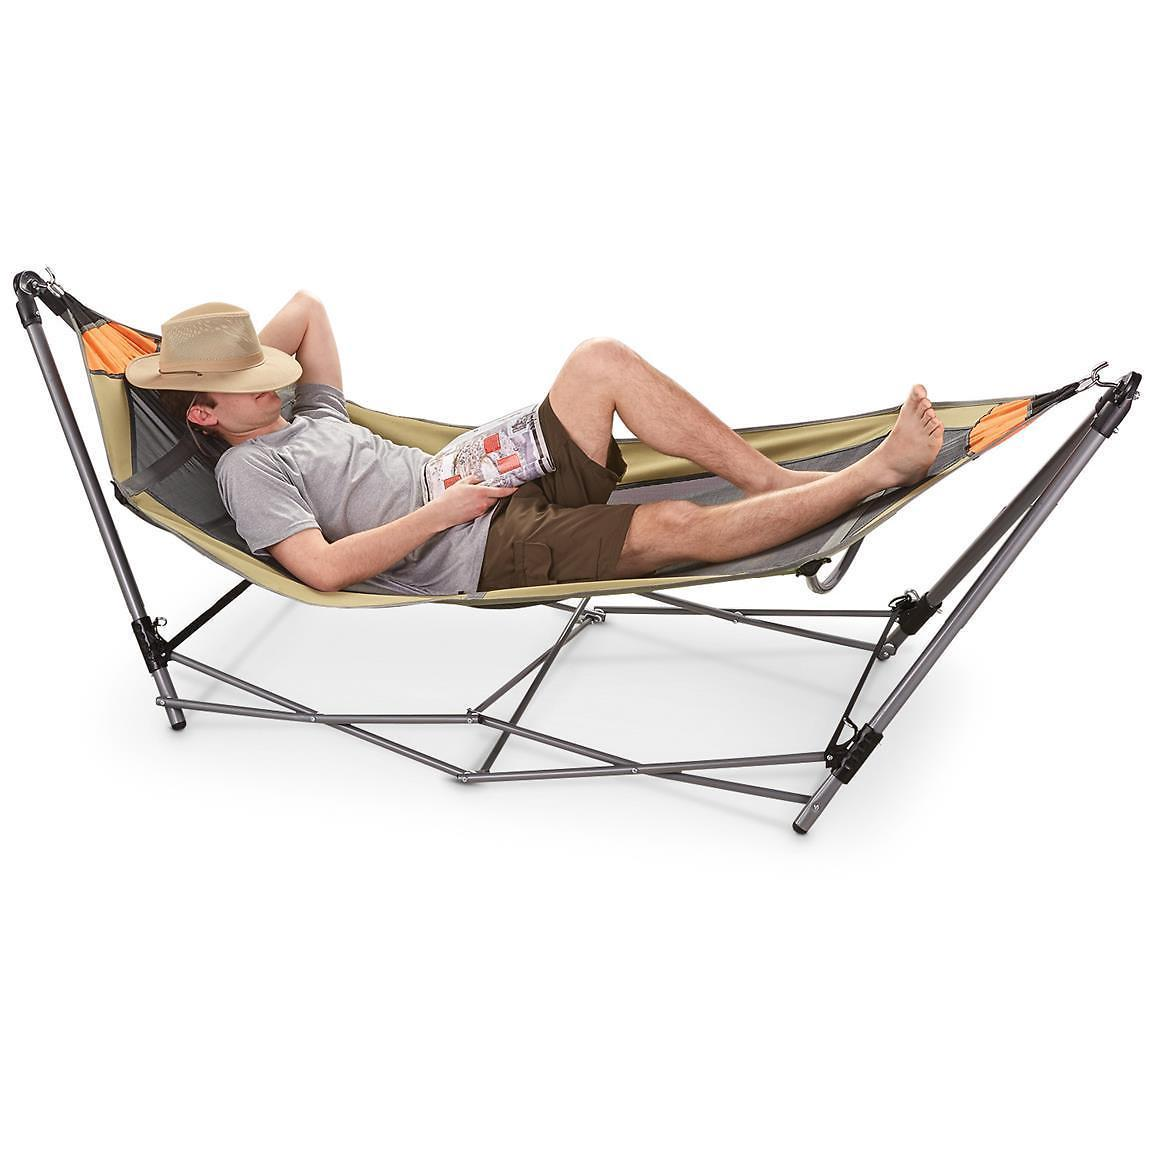 Mesh Fabric Bottom Guide Gear Portable Folding Hammock